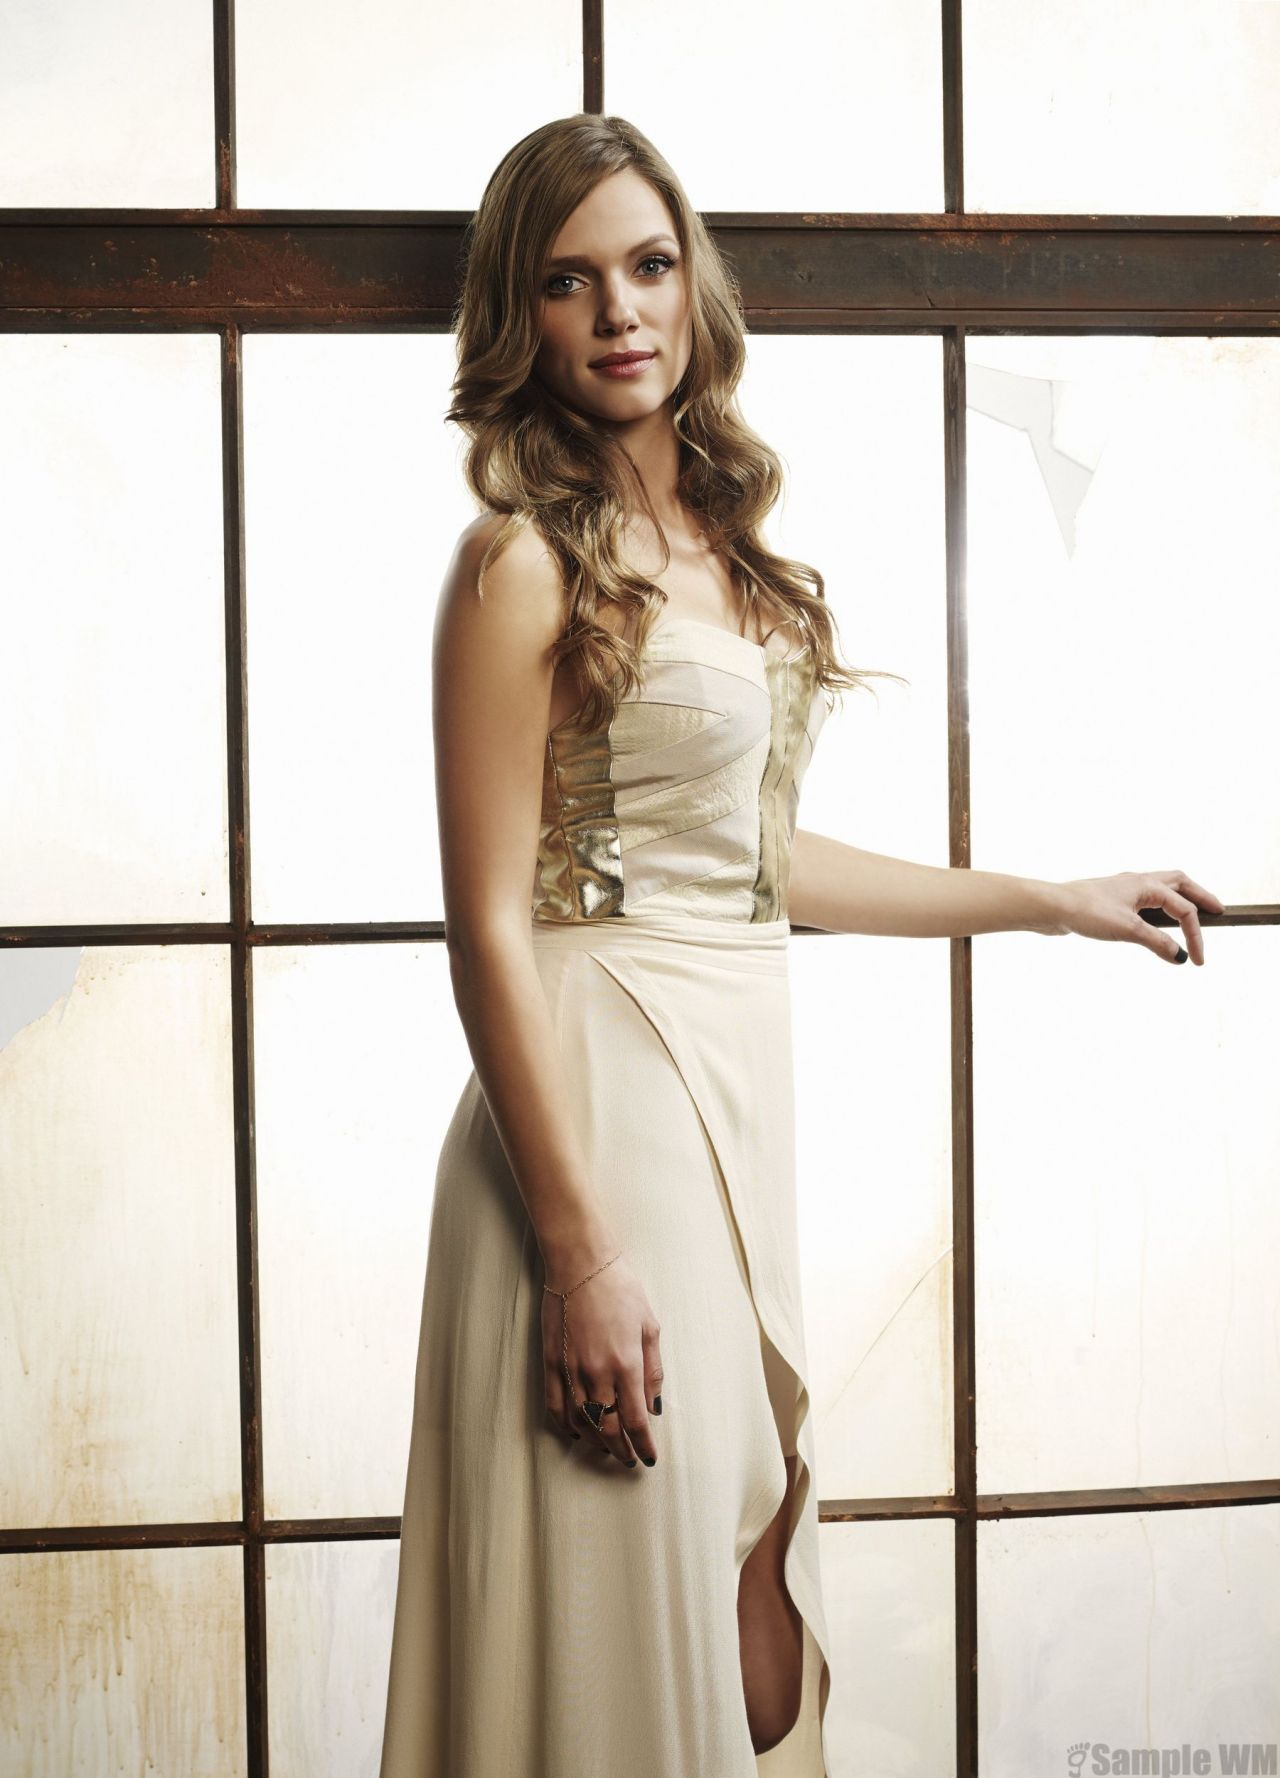 tracy spiridakos facebooktracy spiridakos wiki, tracy spiridakos instagram, tracy spiridakos film, tracy spiridakos facebook, tracy spiridakos, tracy spiridakos age, tracy spiridakos bates motel, tracy spiridakos boyfriend, tracy spiridakos twitter, tracy spiridakos biography, tracy spiridakos tumblr, tracy spiridakos supernatural, tracy spiridakos gq, tracy spiridakos speaks greek, tracy spiridakos net worth